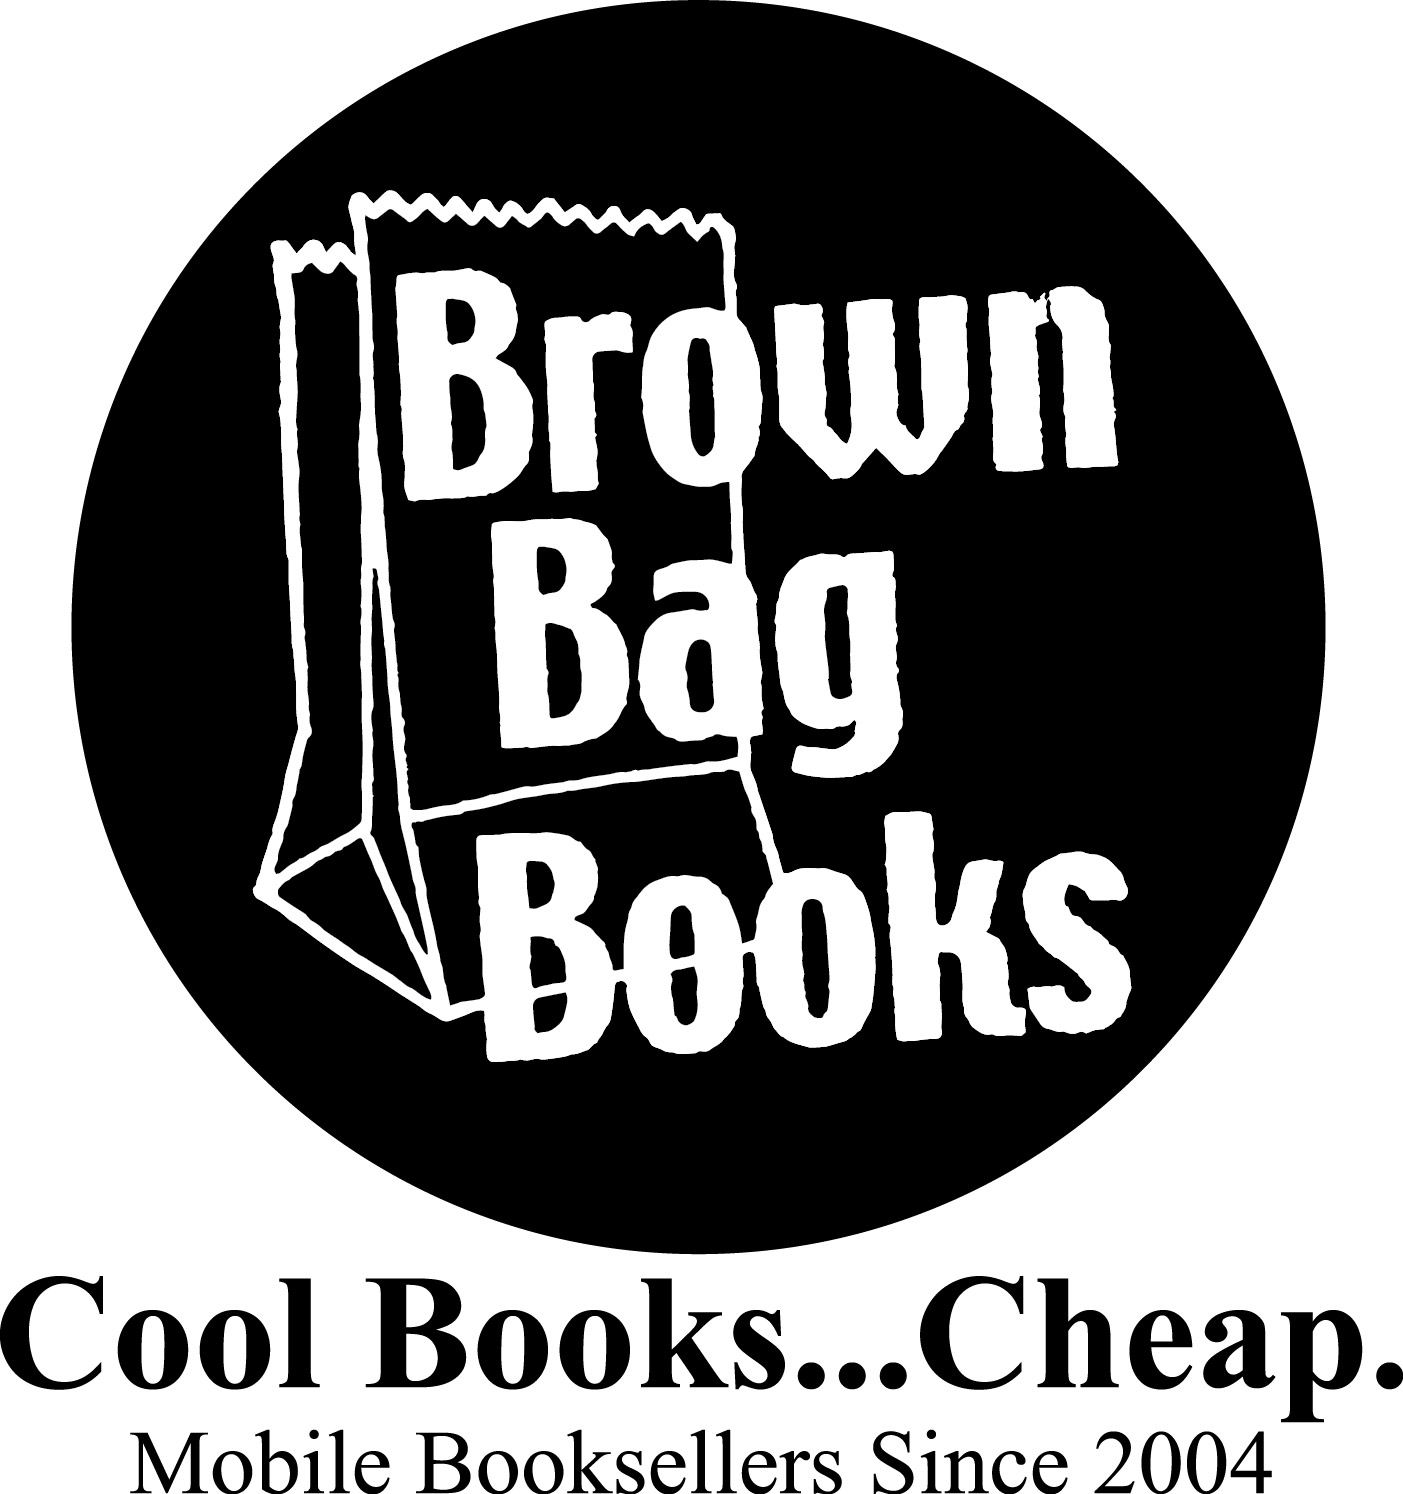 Cool Books...Cheap.